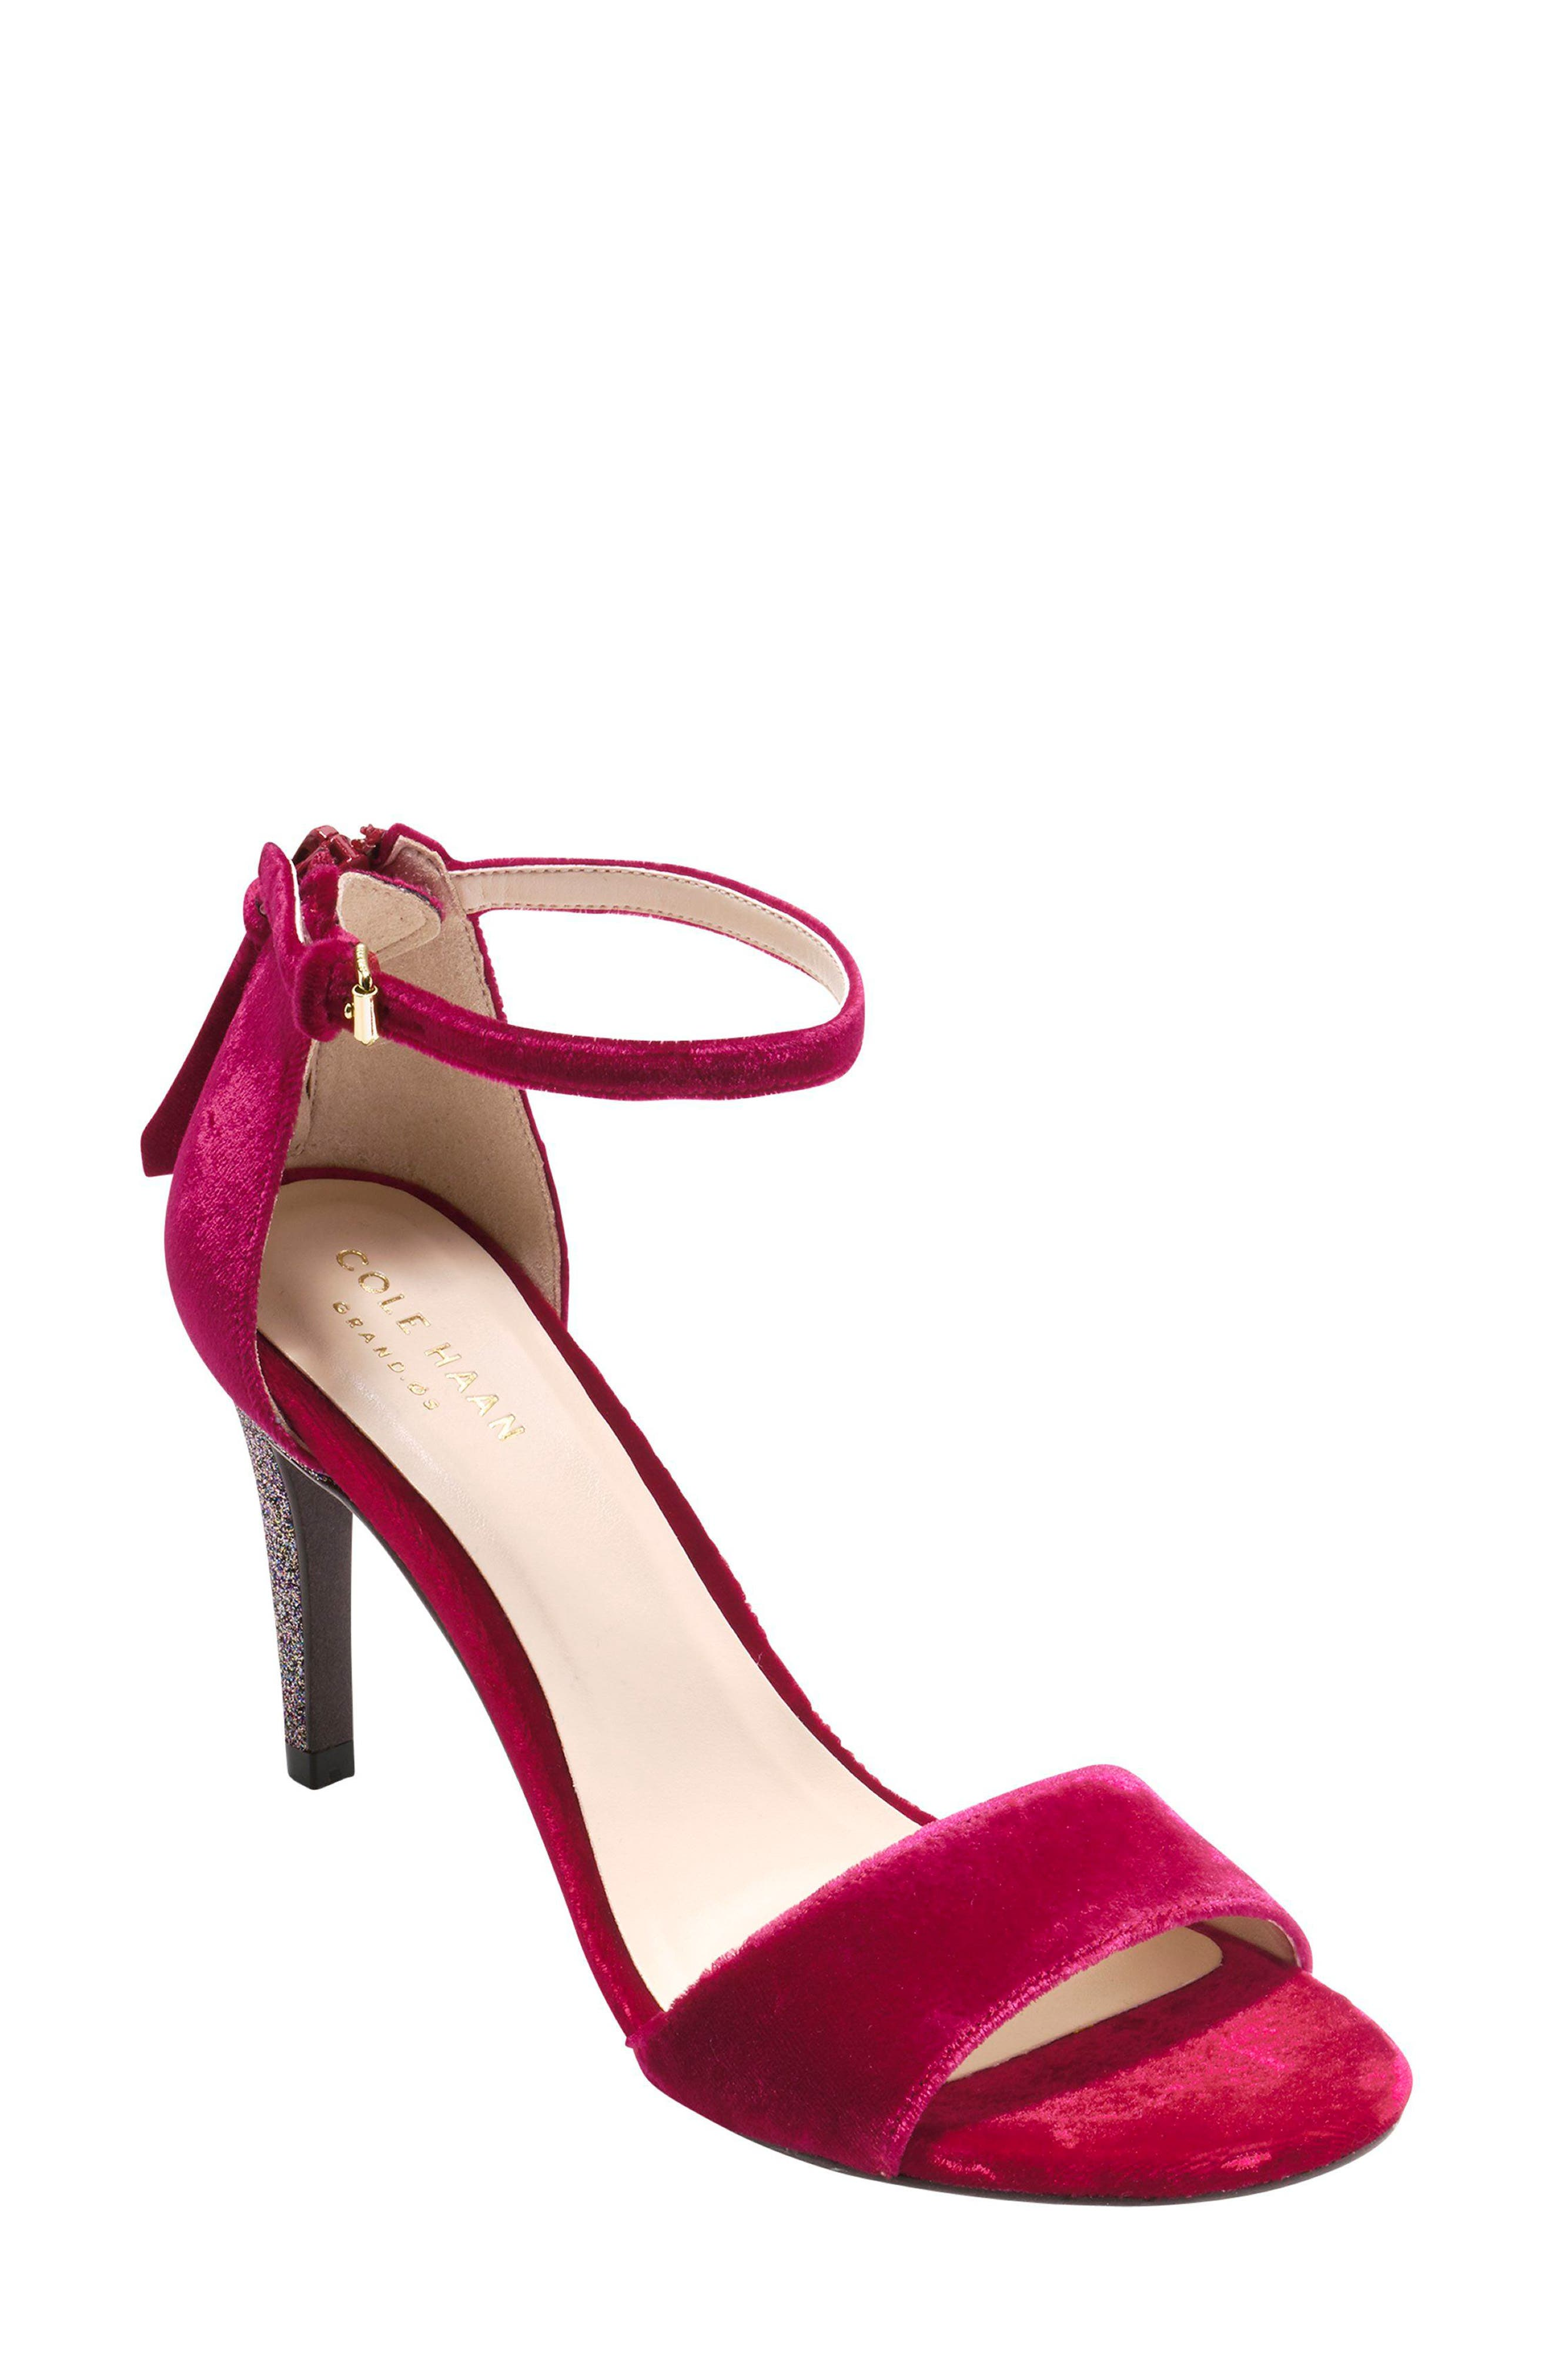 Main Image - Cole Haan Clara Grand Ankle Strap Sandal (Women)